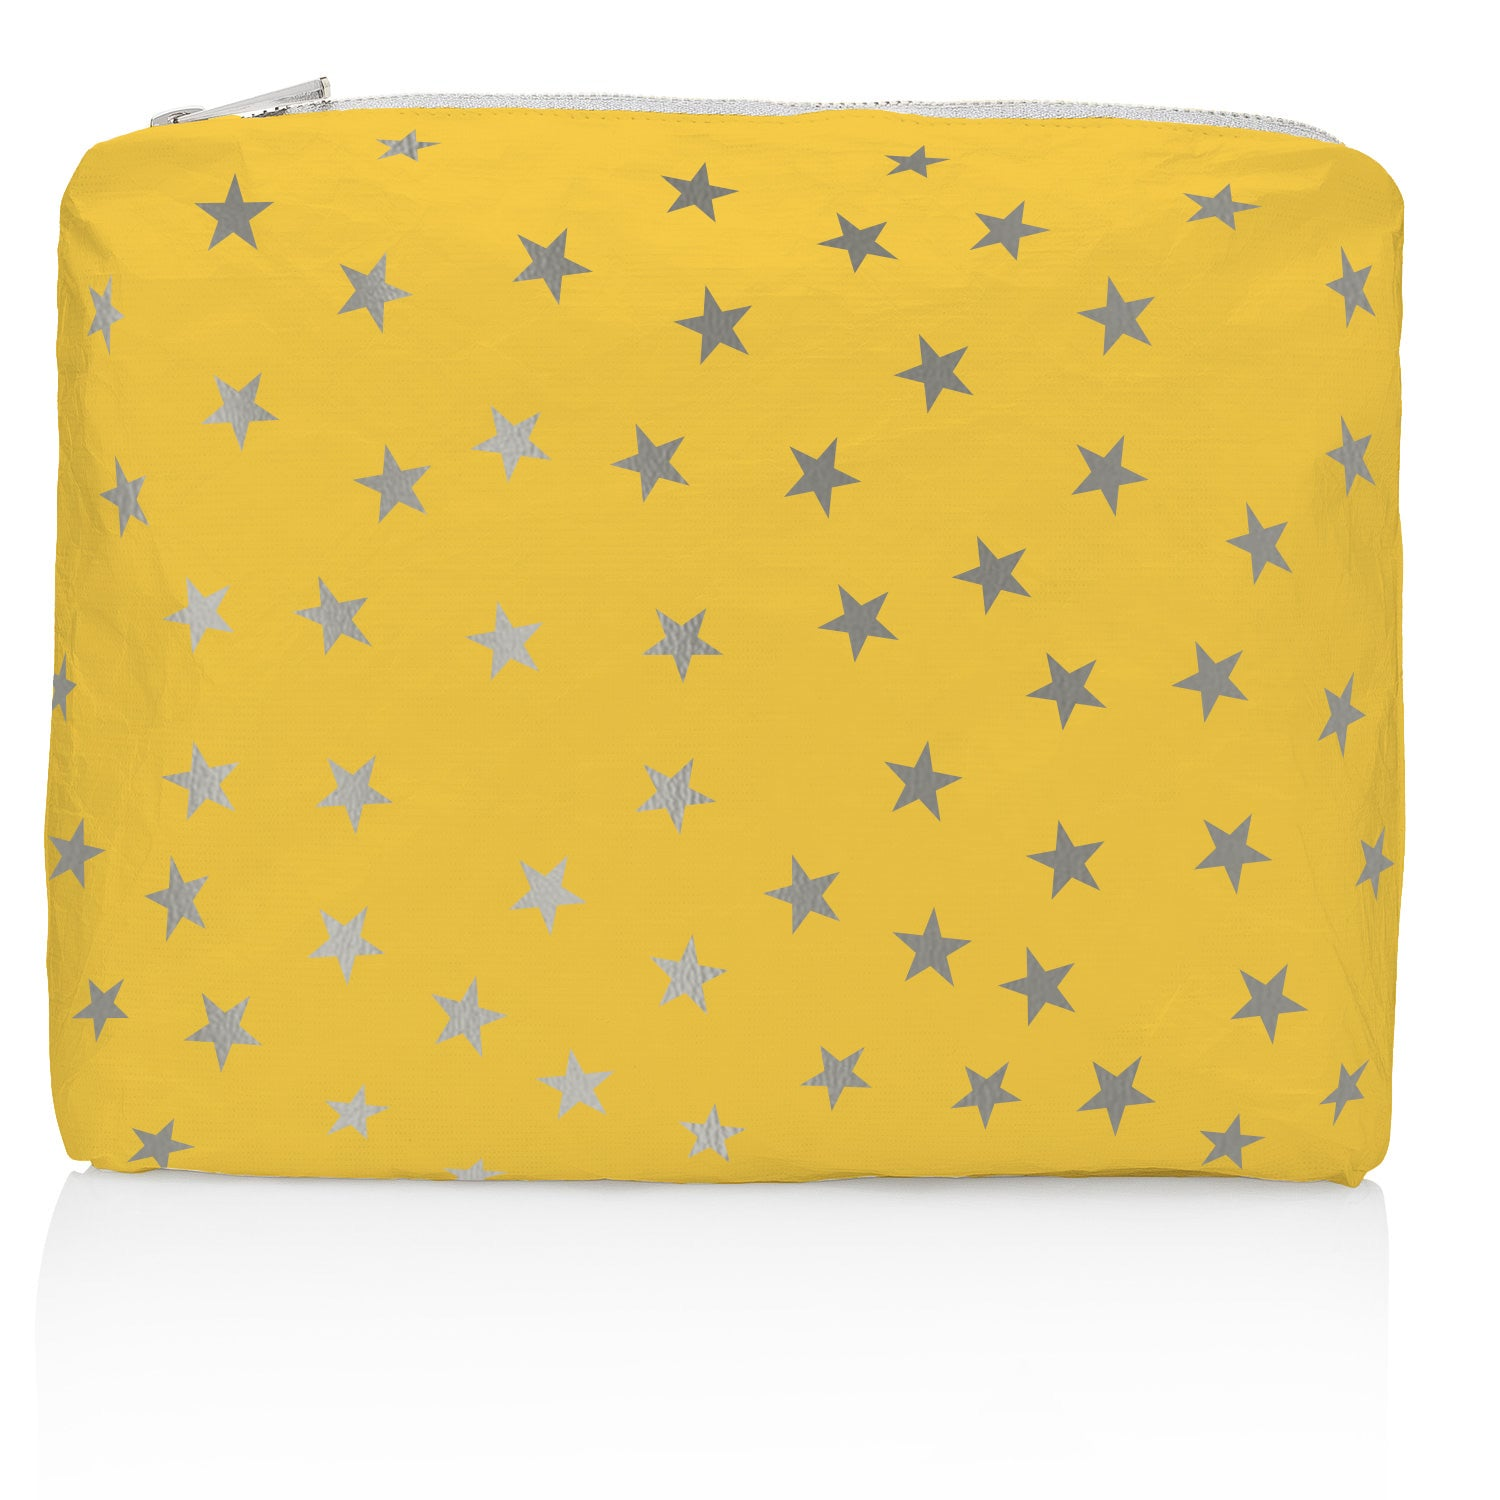 Medium Pack - Island Sunshine with Myriad Silver Stars